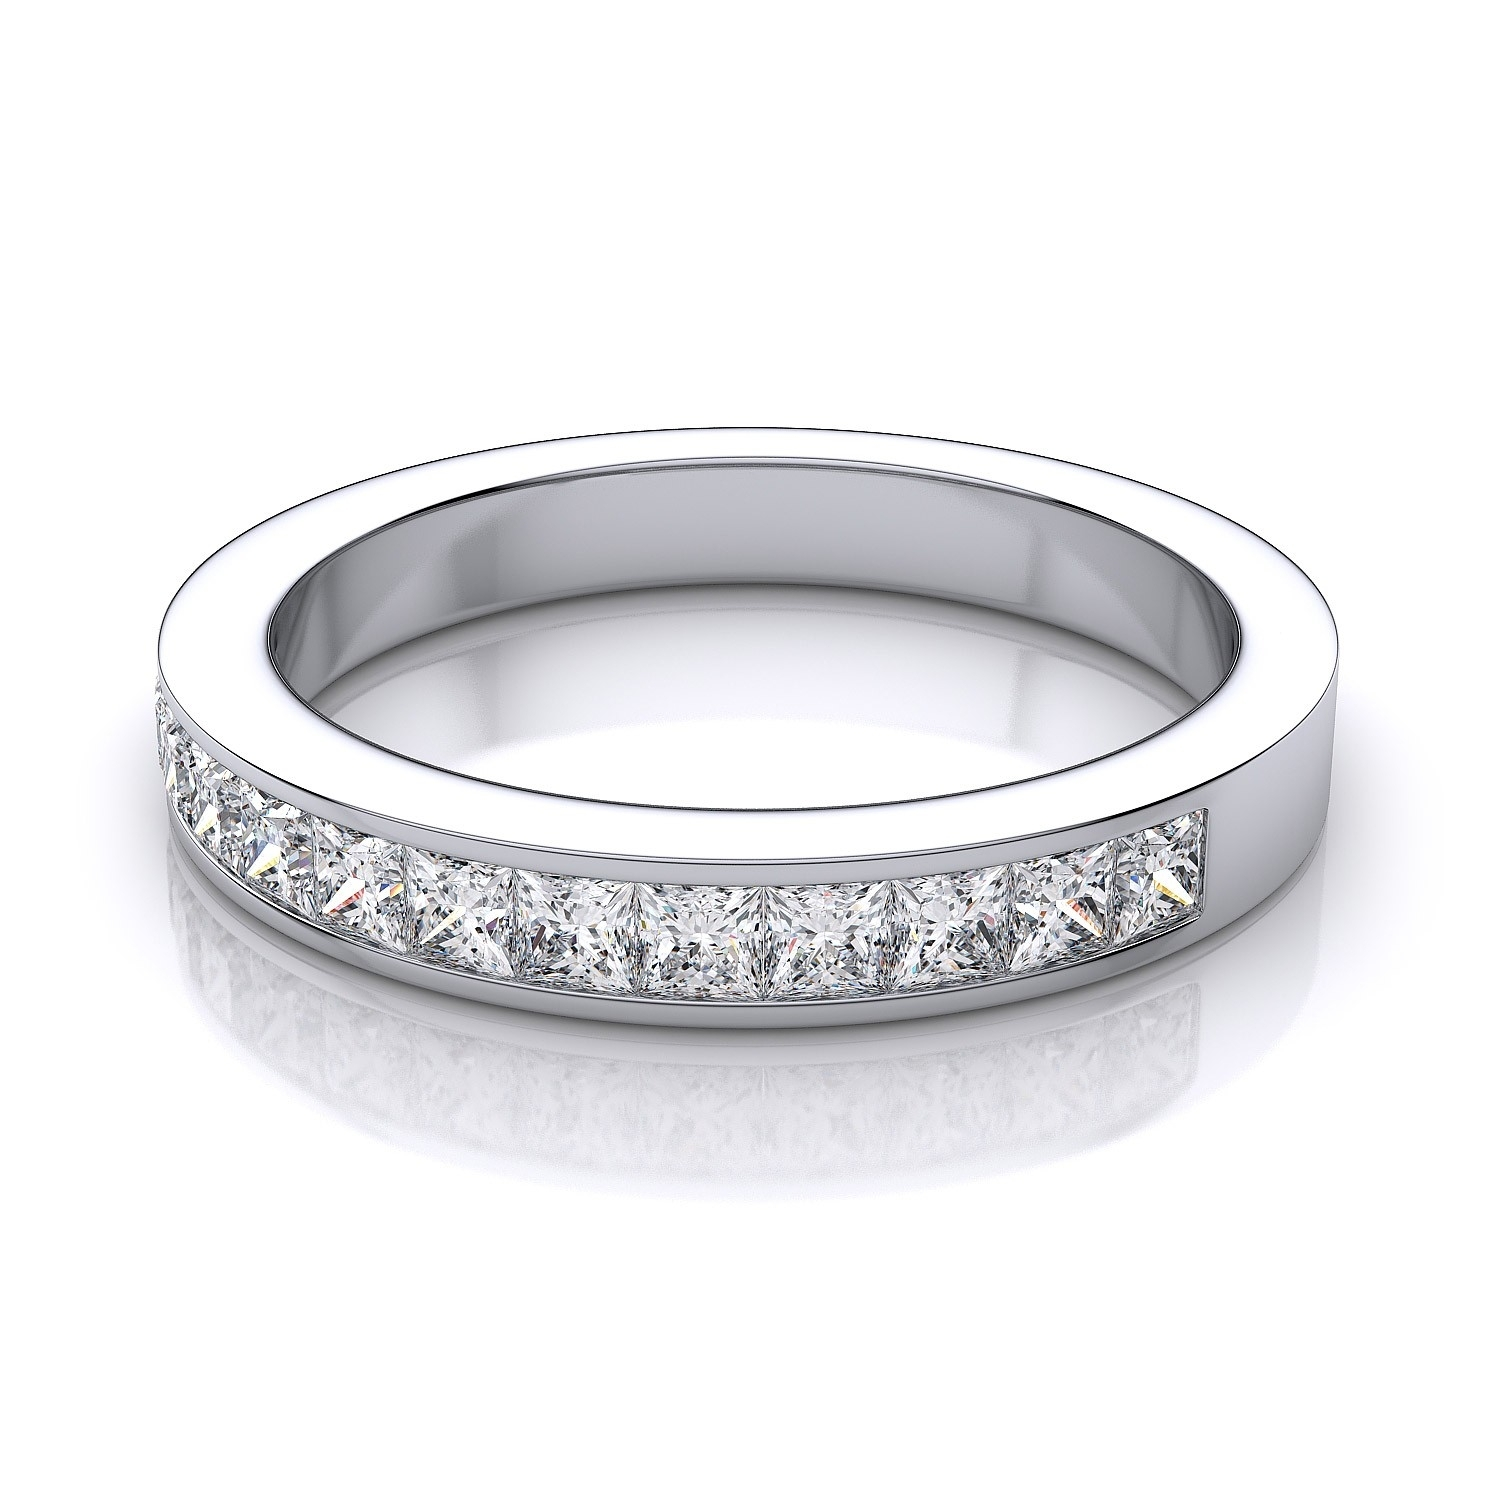 3.8Mm Invisible Set Princess Cut Diamond Anniversary Band In In 2017 Diamond Channel Set Anniversary Bands (Gallery 13 of 15)